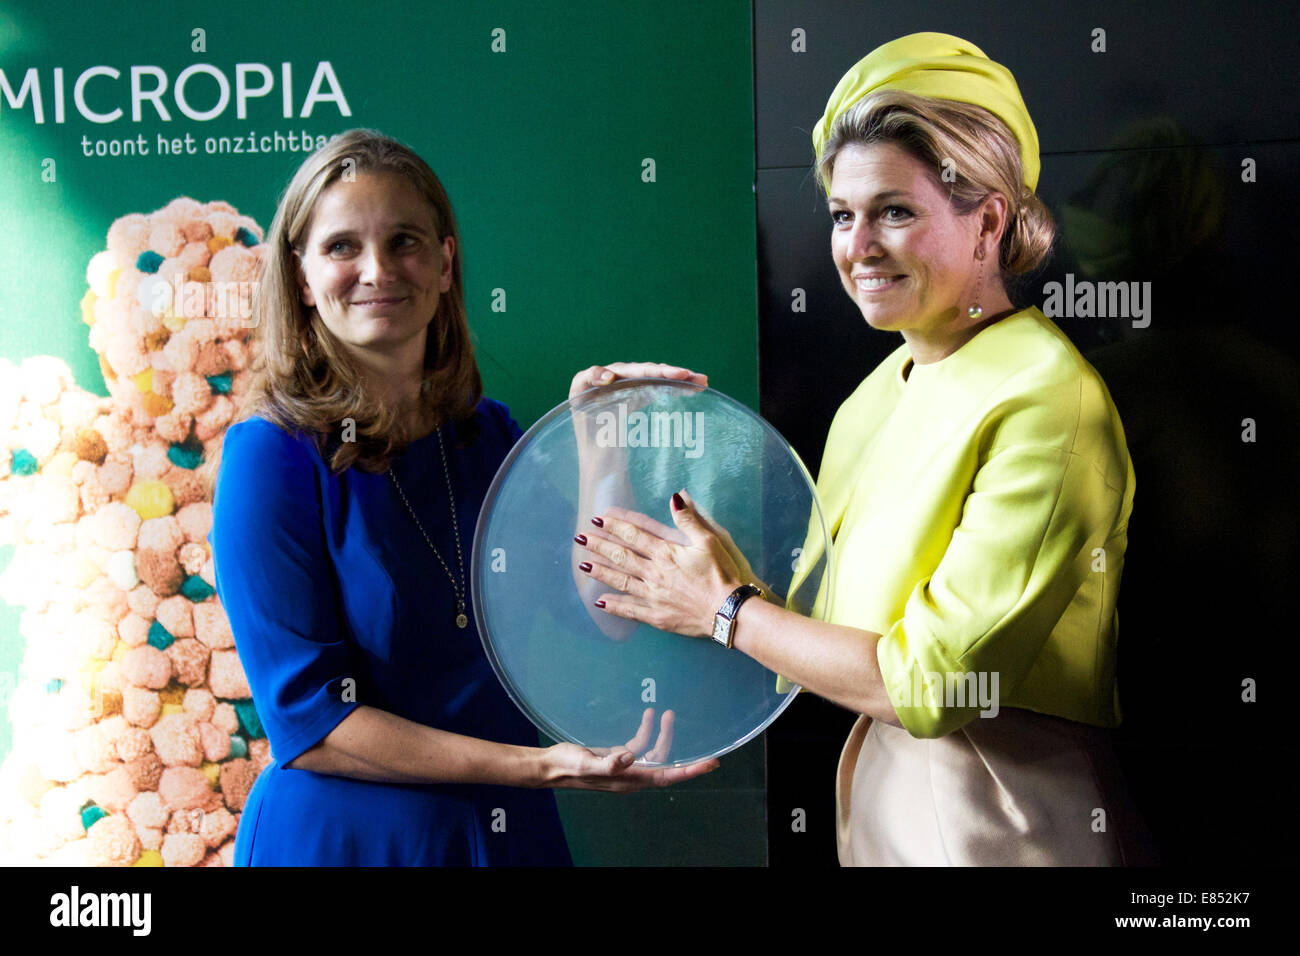 Amsterdam, Netherlands. 30th Sep, 2014. Dutch Queen Maxima (R) attends the opening ceremony of the Micropia Museum, - Stock Image